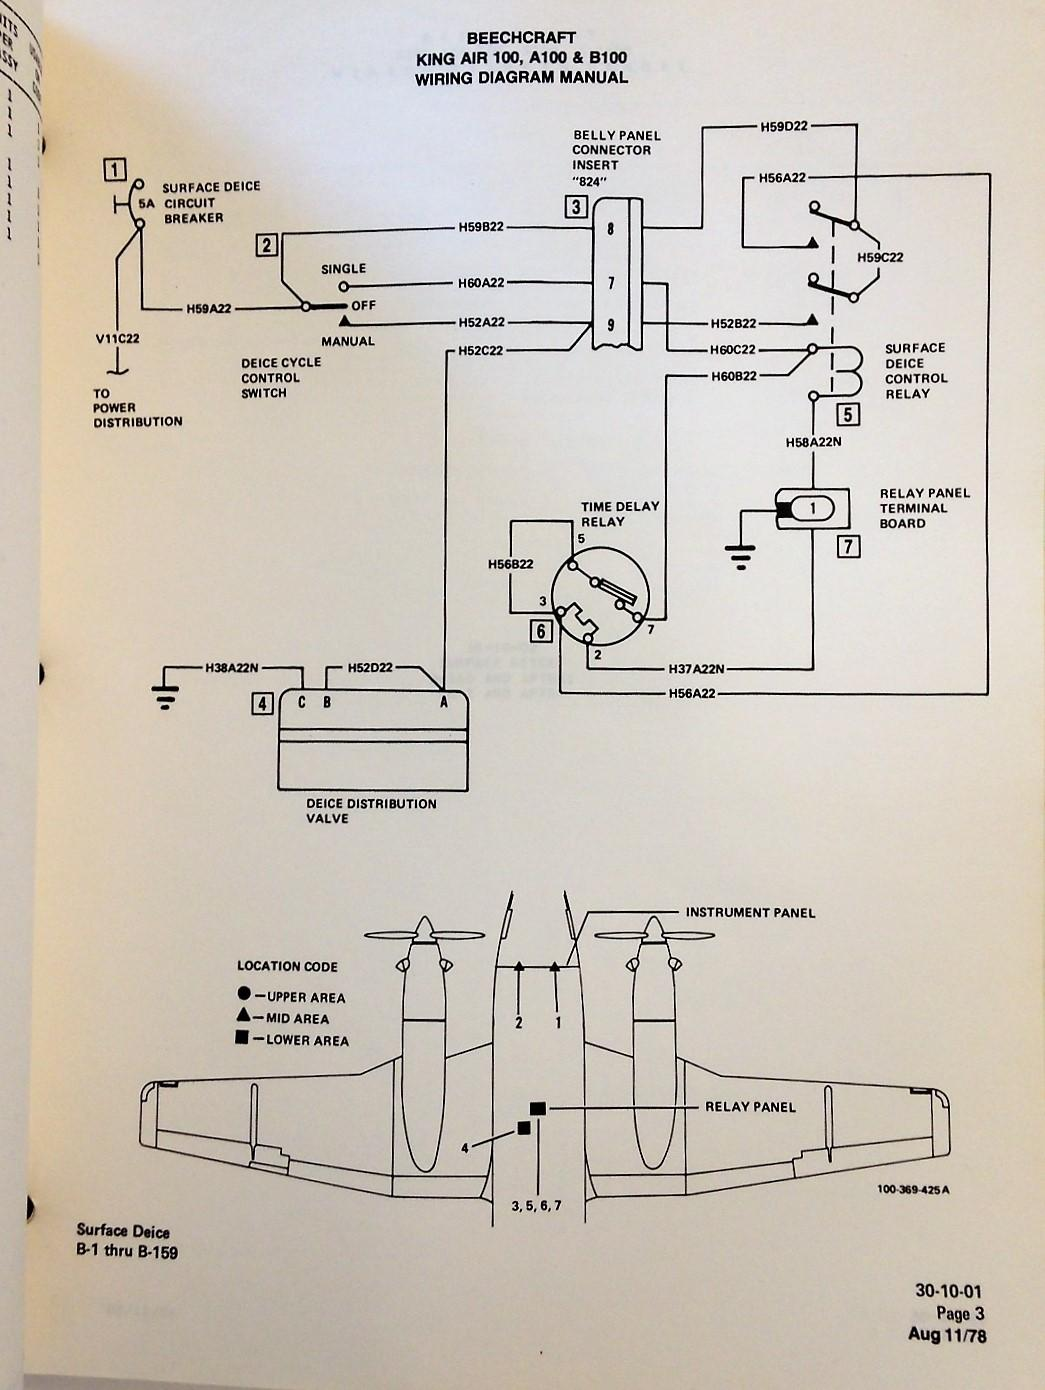 Aircraft Schematic Diagram